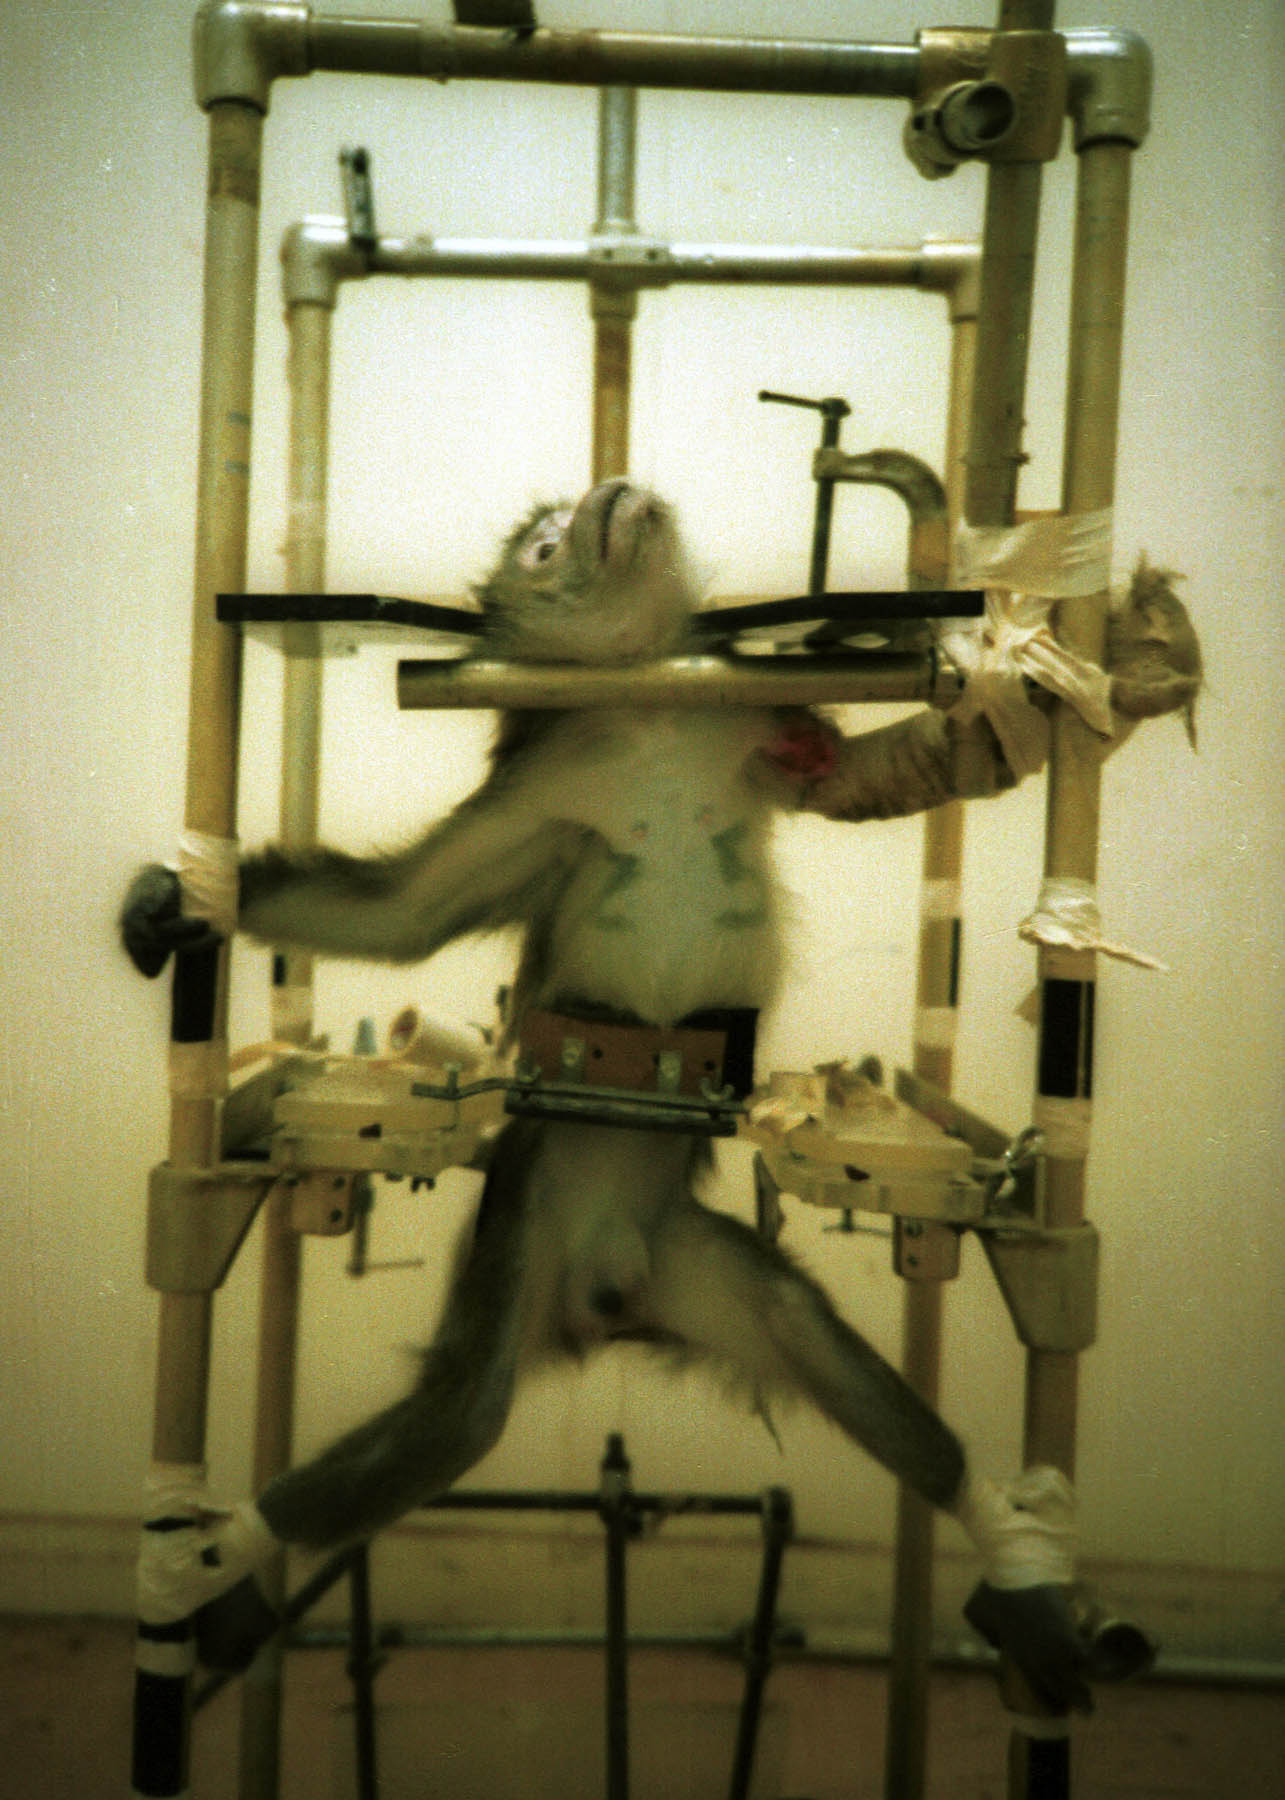 Image result for free to use image of lab-monkey